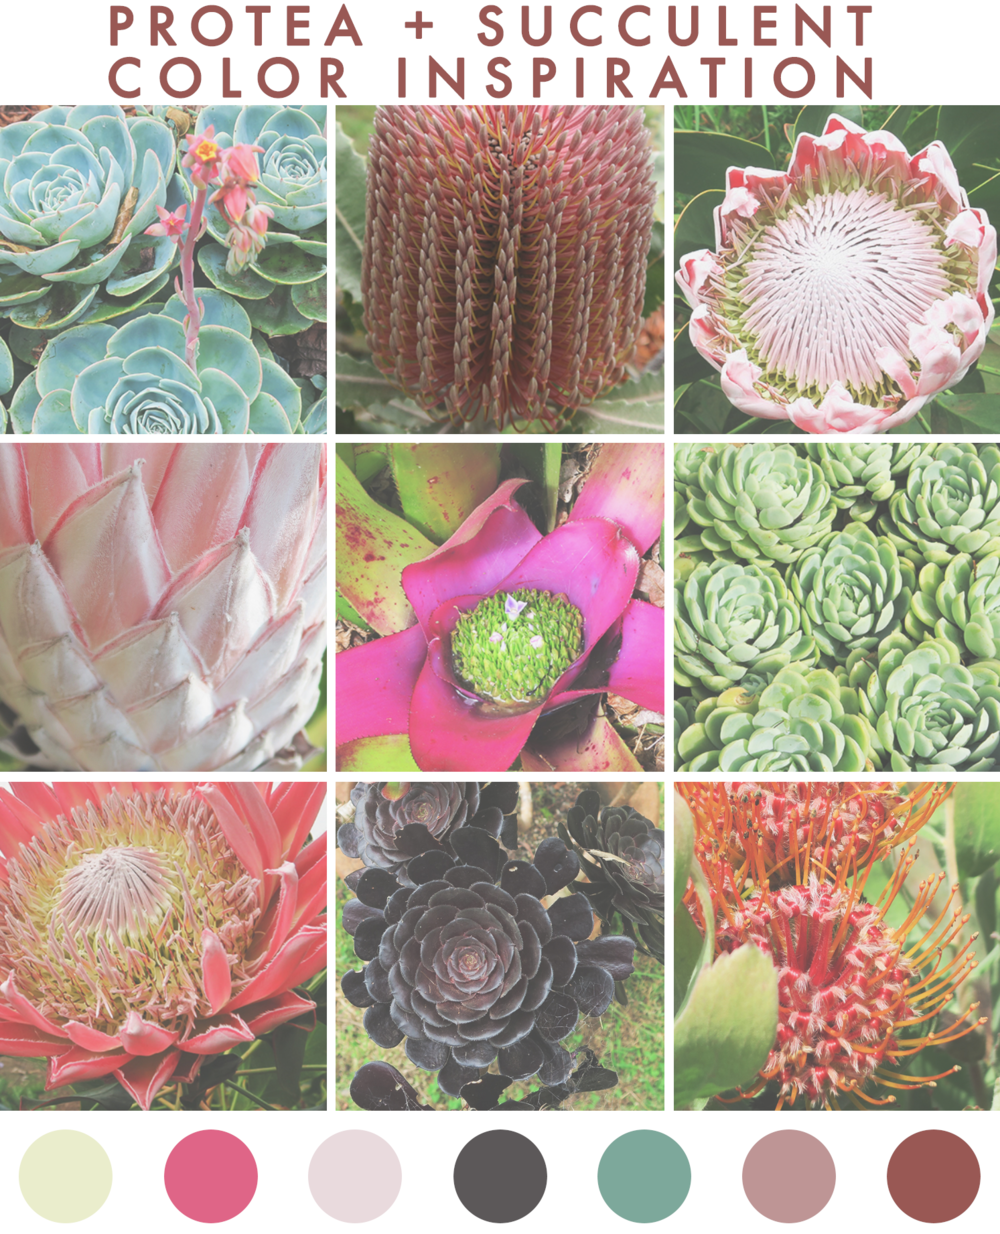 jo-torrijos-a-simpler-design-color-inspiration-nature-succulents-protea-maui-10.jpg